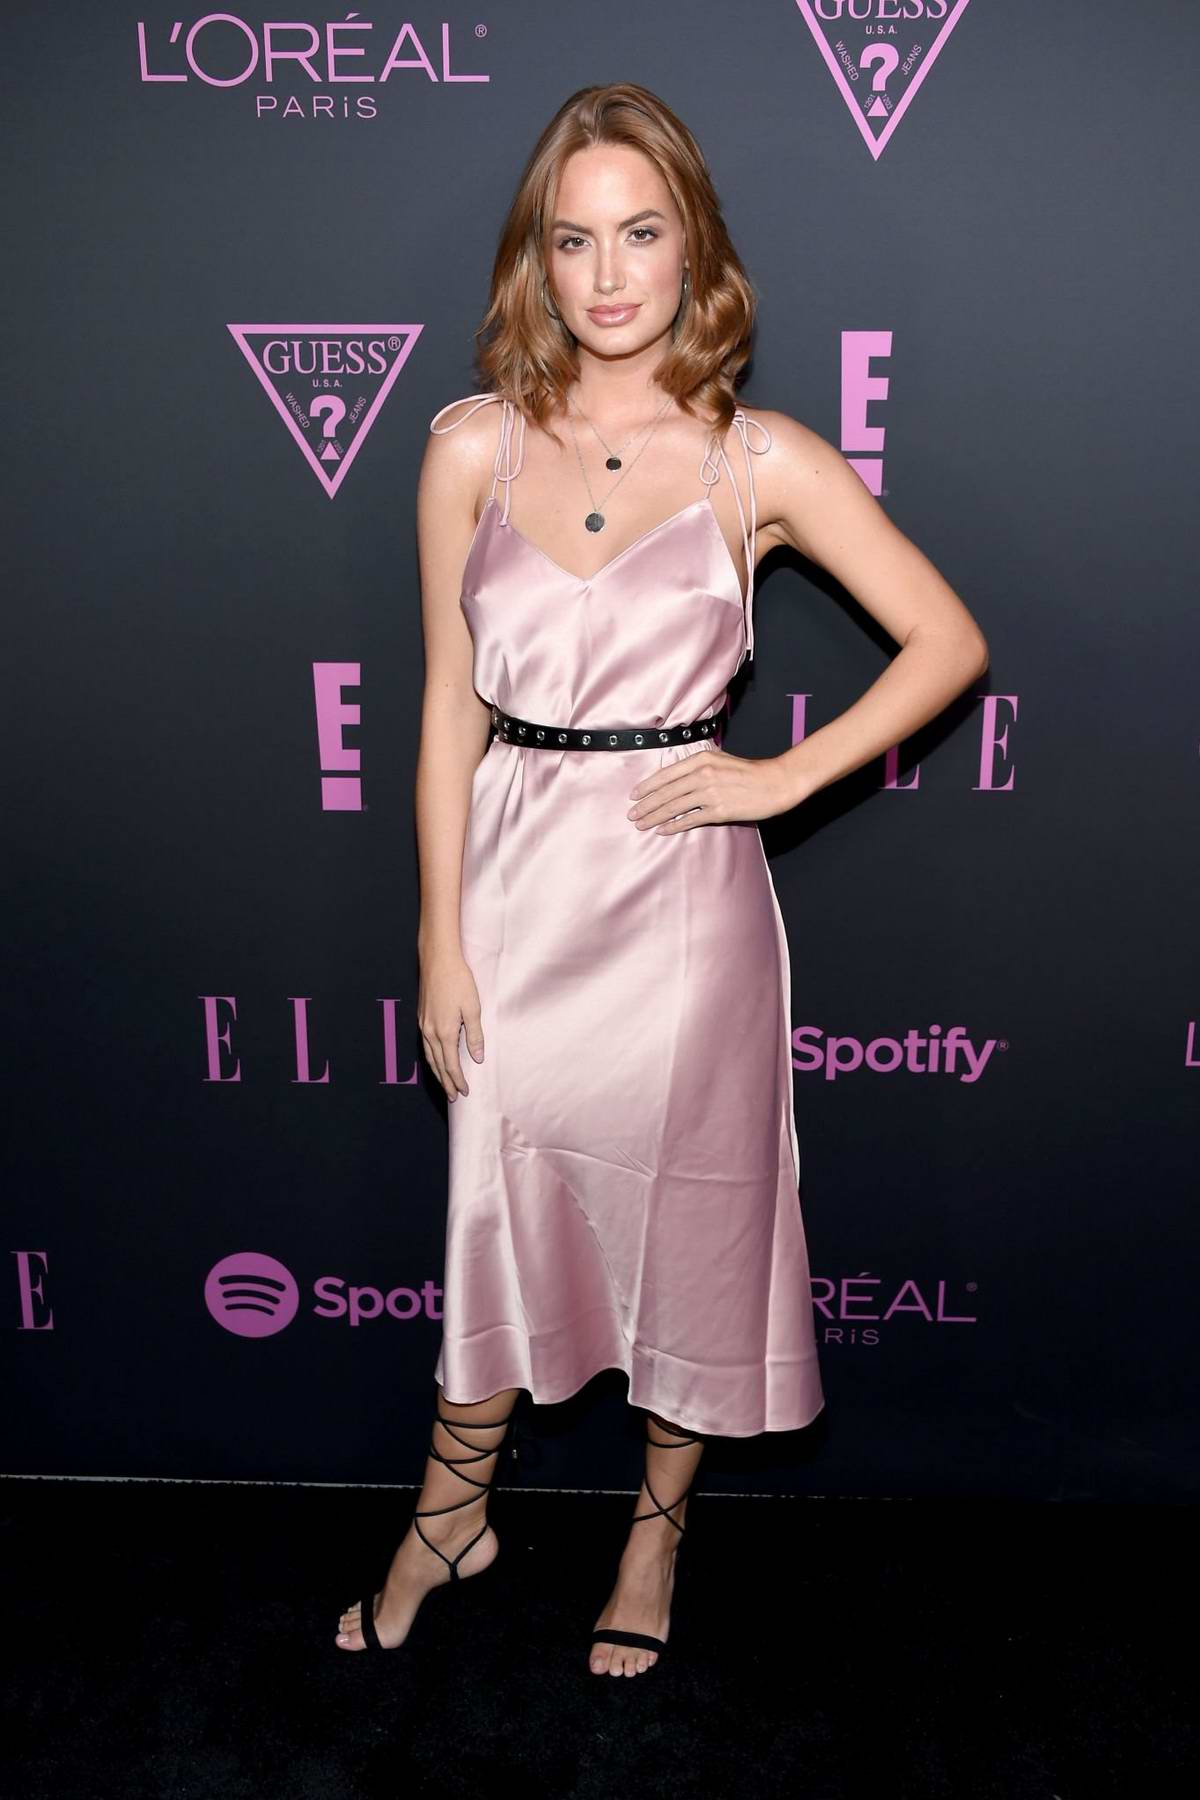 Haley Kalil attends ELLE's Women in Music event in New York City